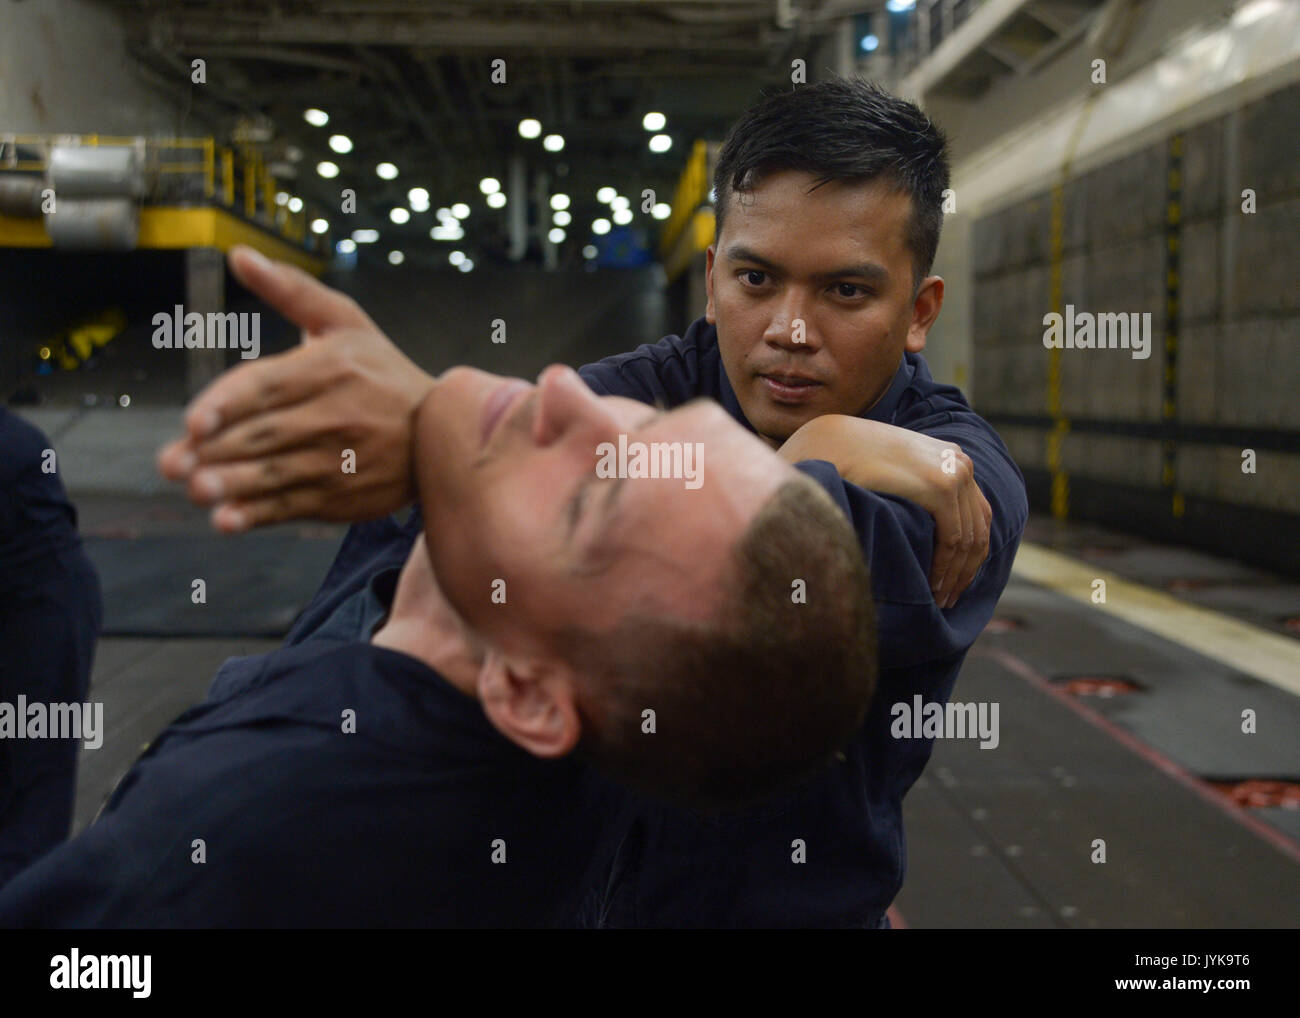 170816-N-NB142-1055 PACIFIC OCEAN (Aug. 16, 2017) Airman Edizon Dizon performs a mechanical advantage control hold (MACH) takedown on Airman Apprentice Jordan Baker during a Security Reaction Force Basic course in the well deck of the Wasp-class amphibious assault ship USS Essex (LHD 2). Essex is underway conducting sea trials and flight deck certifications off the coast of Southern California. (U.S. Navy photo by Mass Communication Specialist 3rd Class Chandler Harrell/Released) - Stock Image